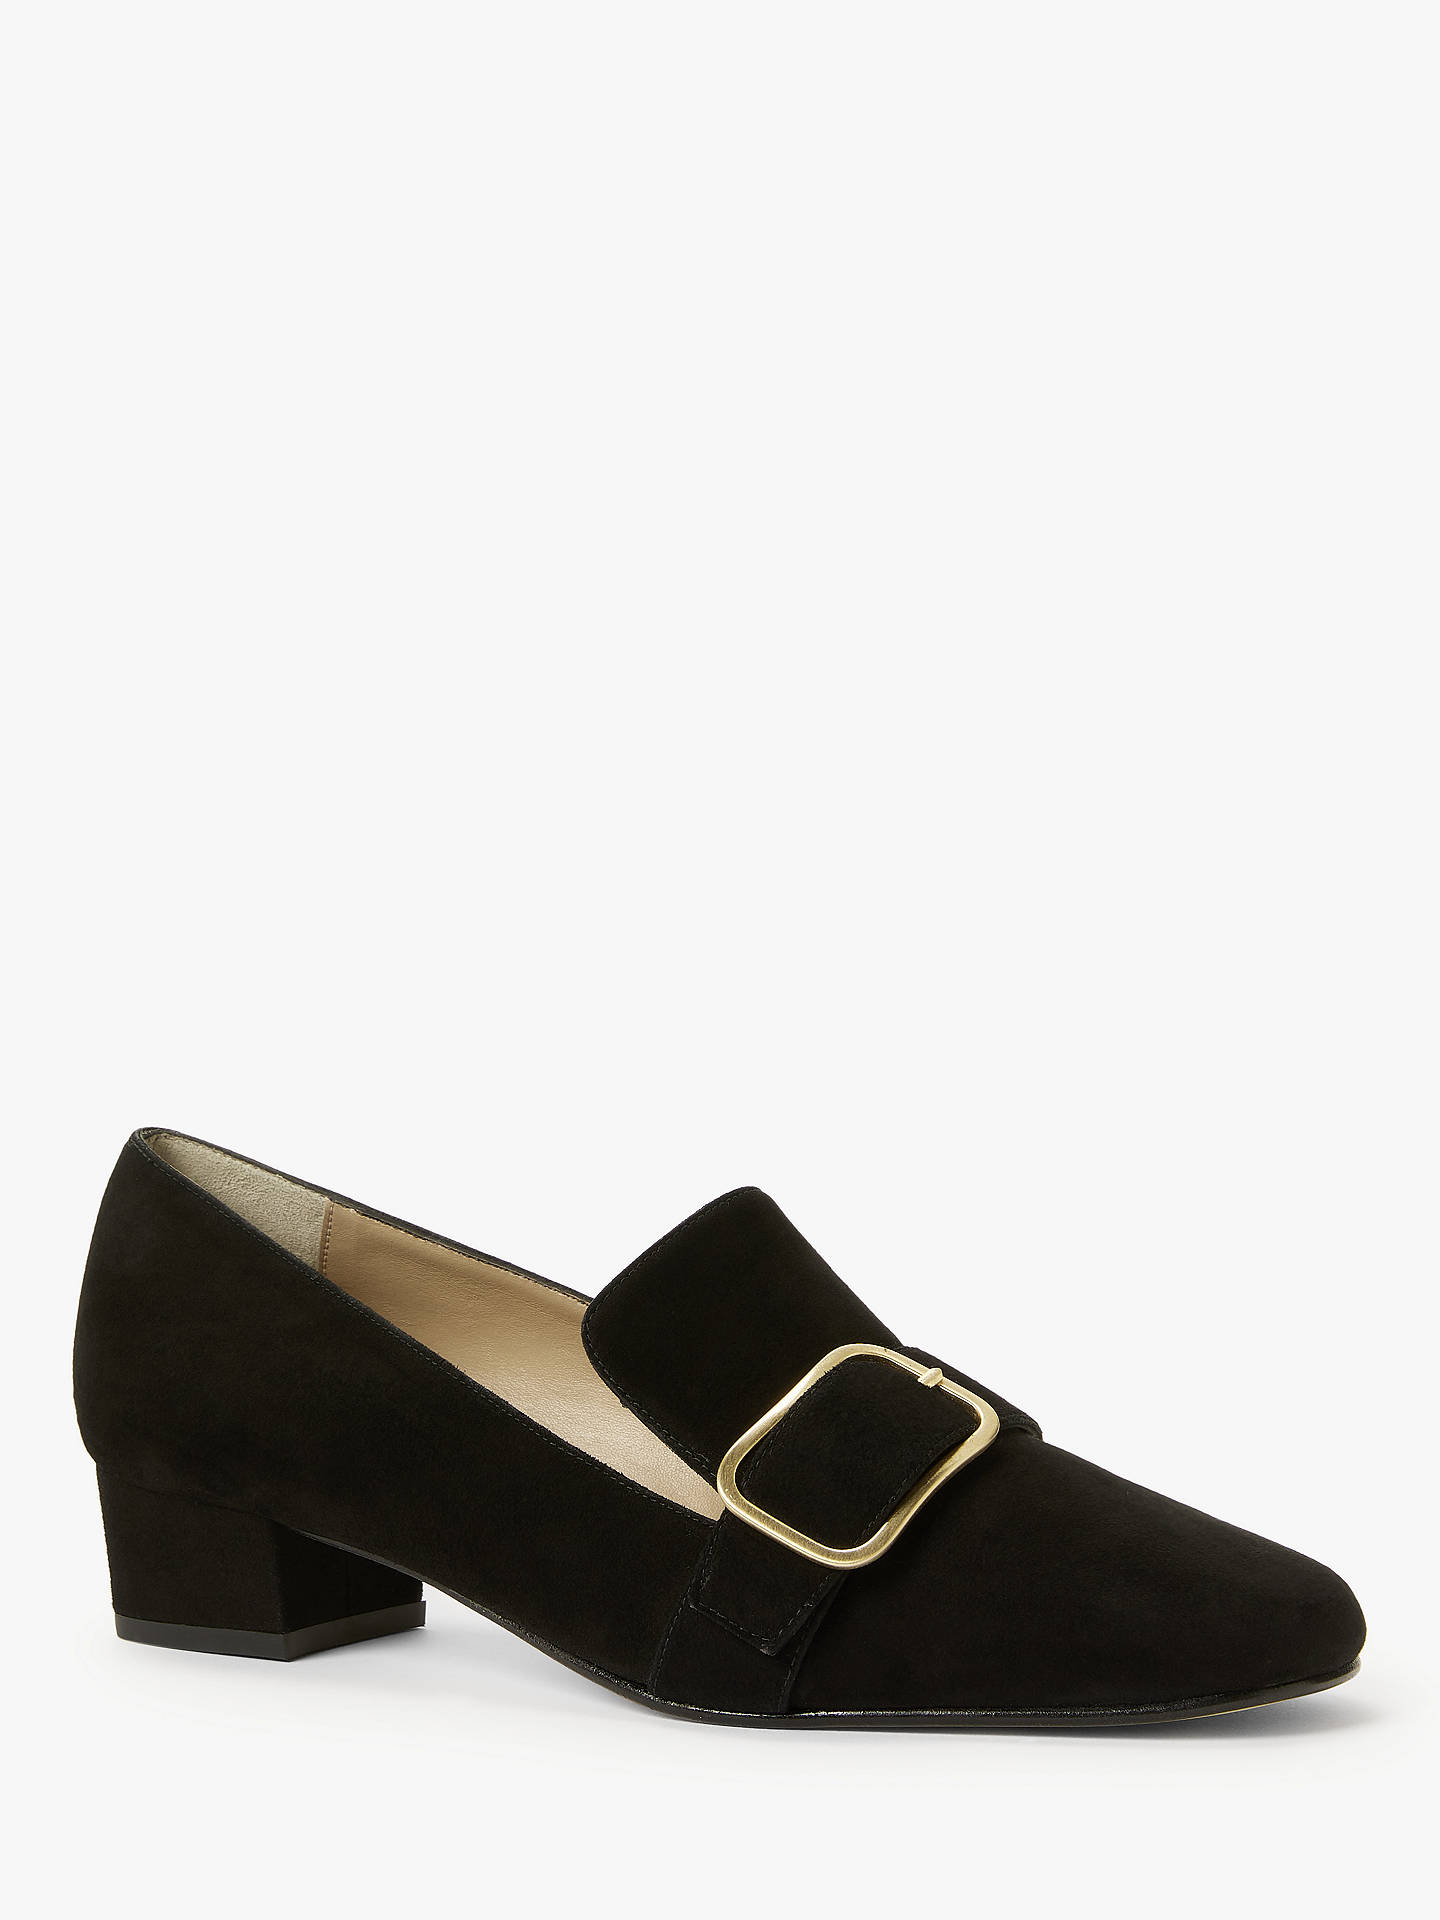 Buy John Lewis & Partners Amelie Suede Low Heel Court Shoes, Black, 4 Online at johnlewis.com